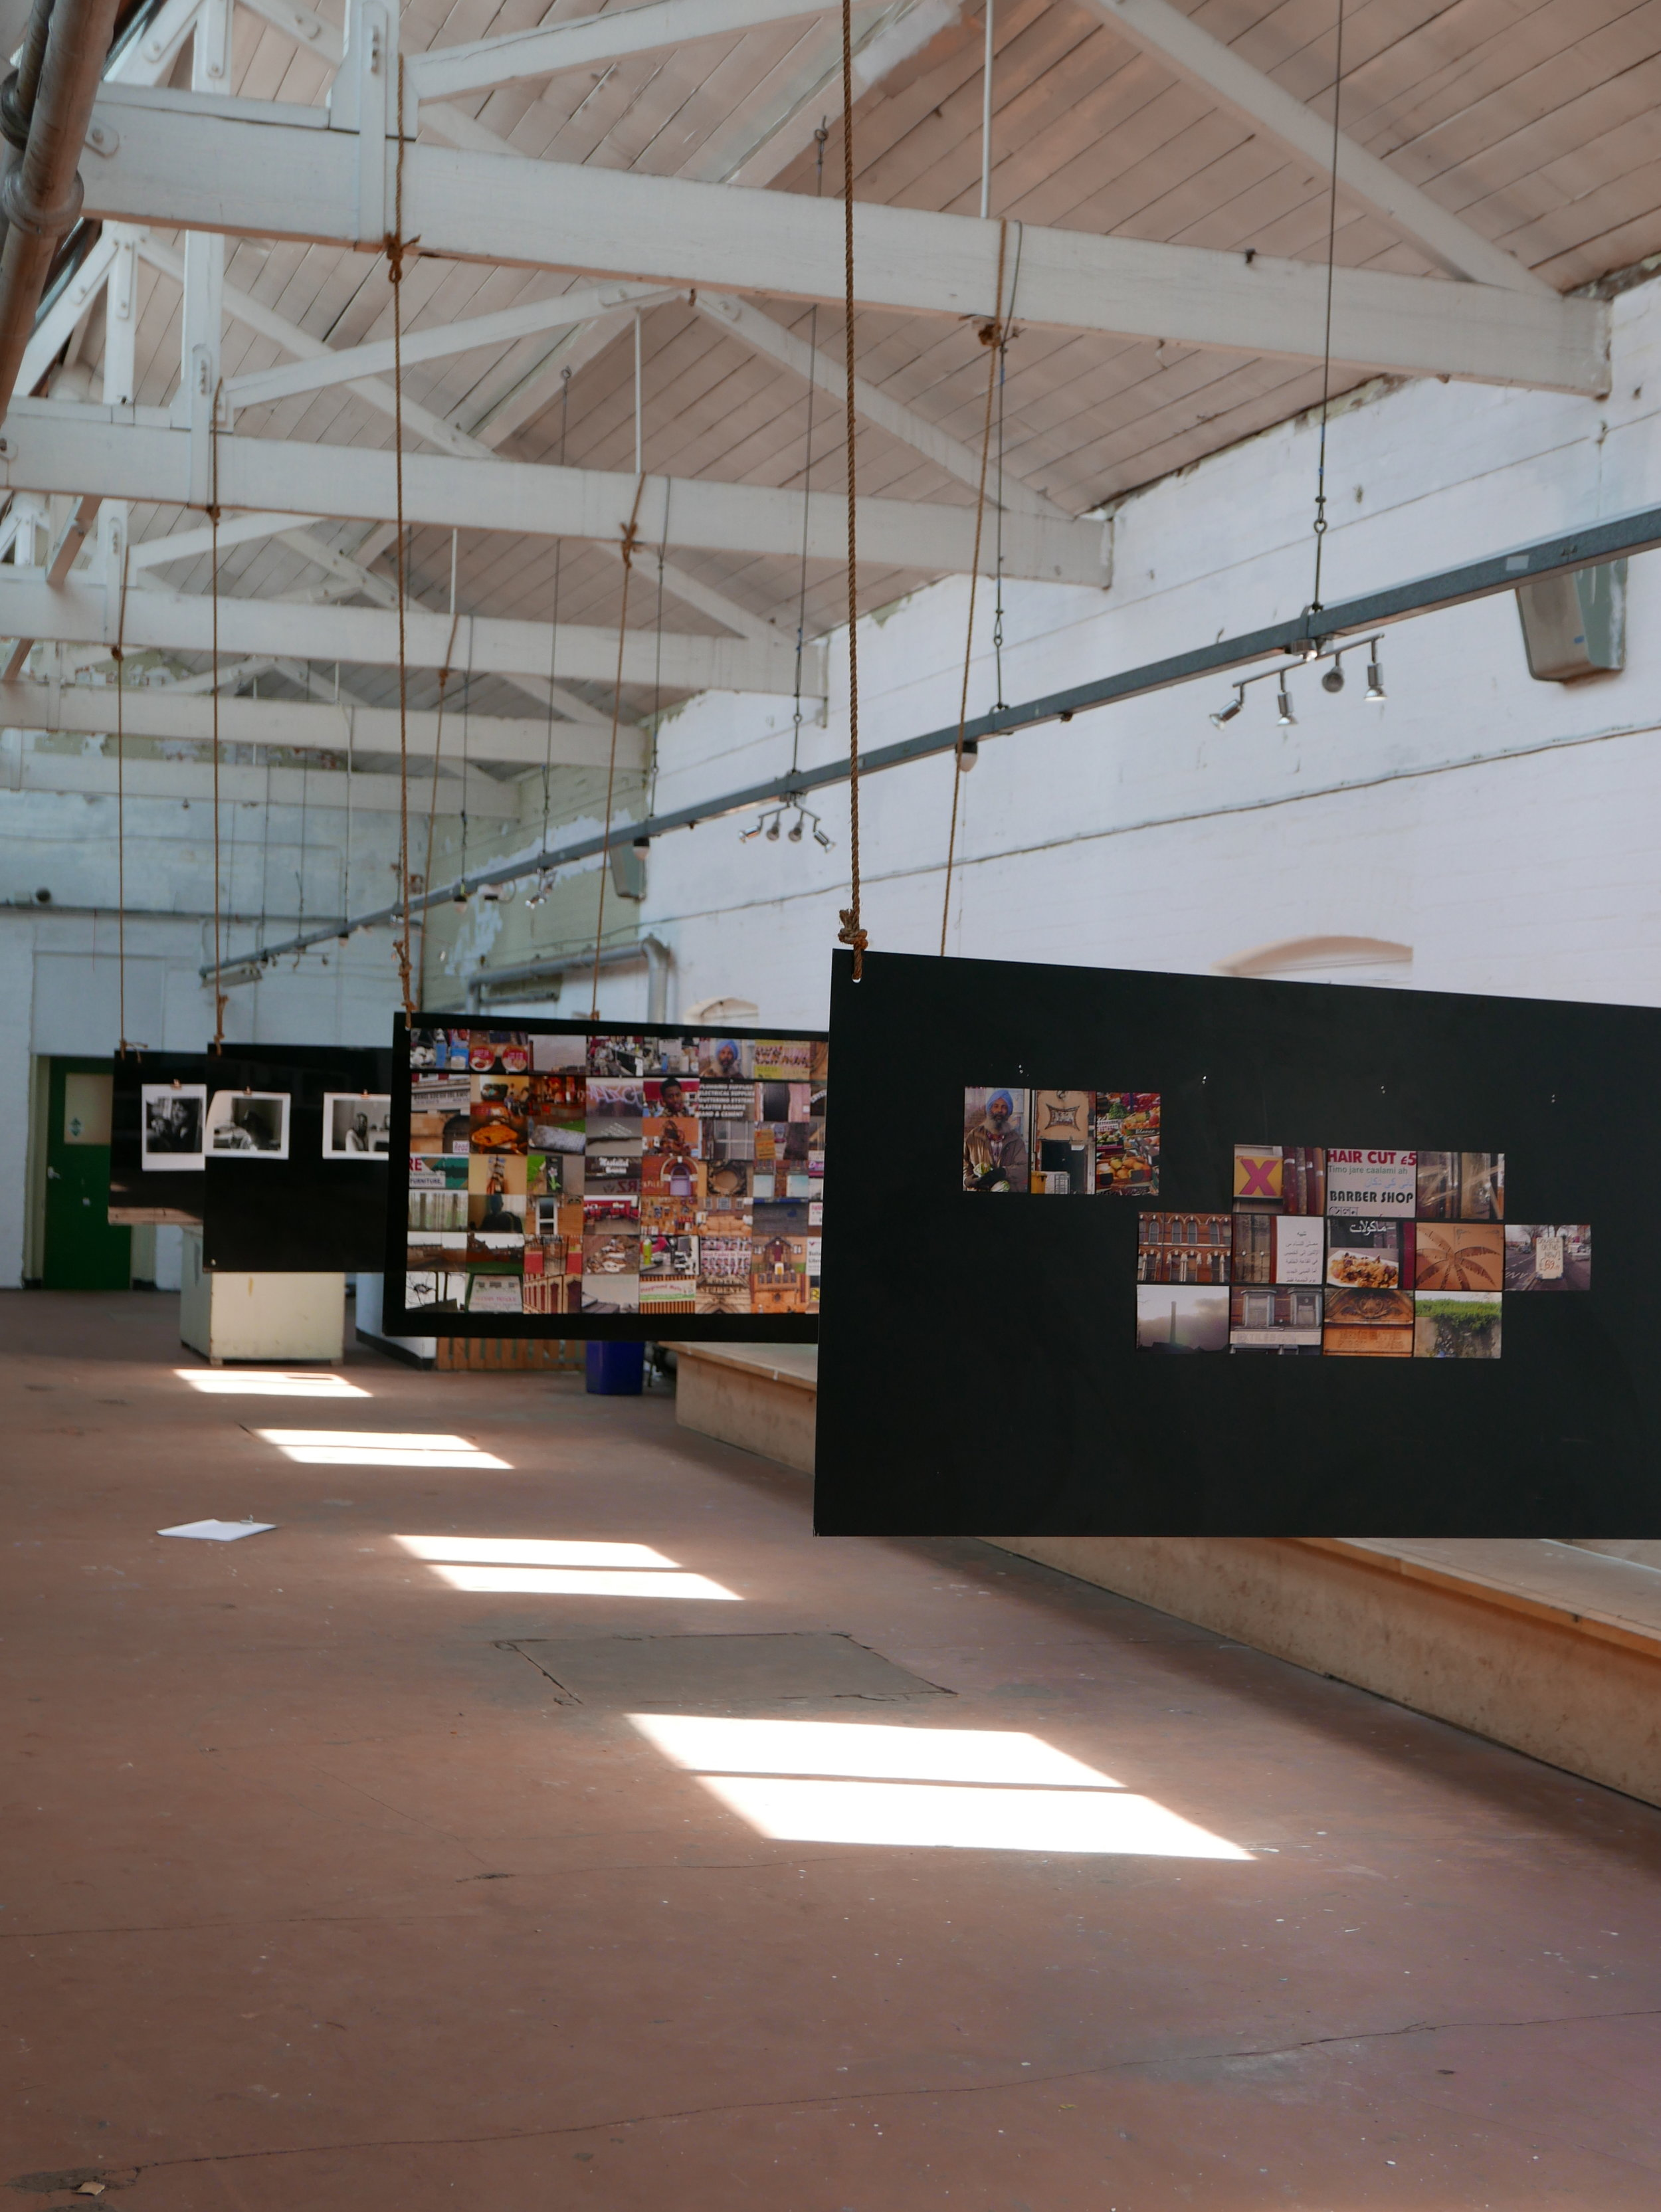 The Upper Gallery being used for a photography exhibition